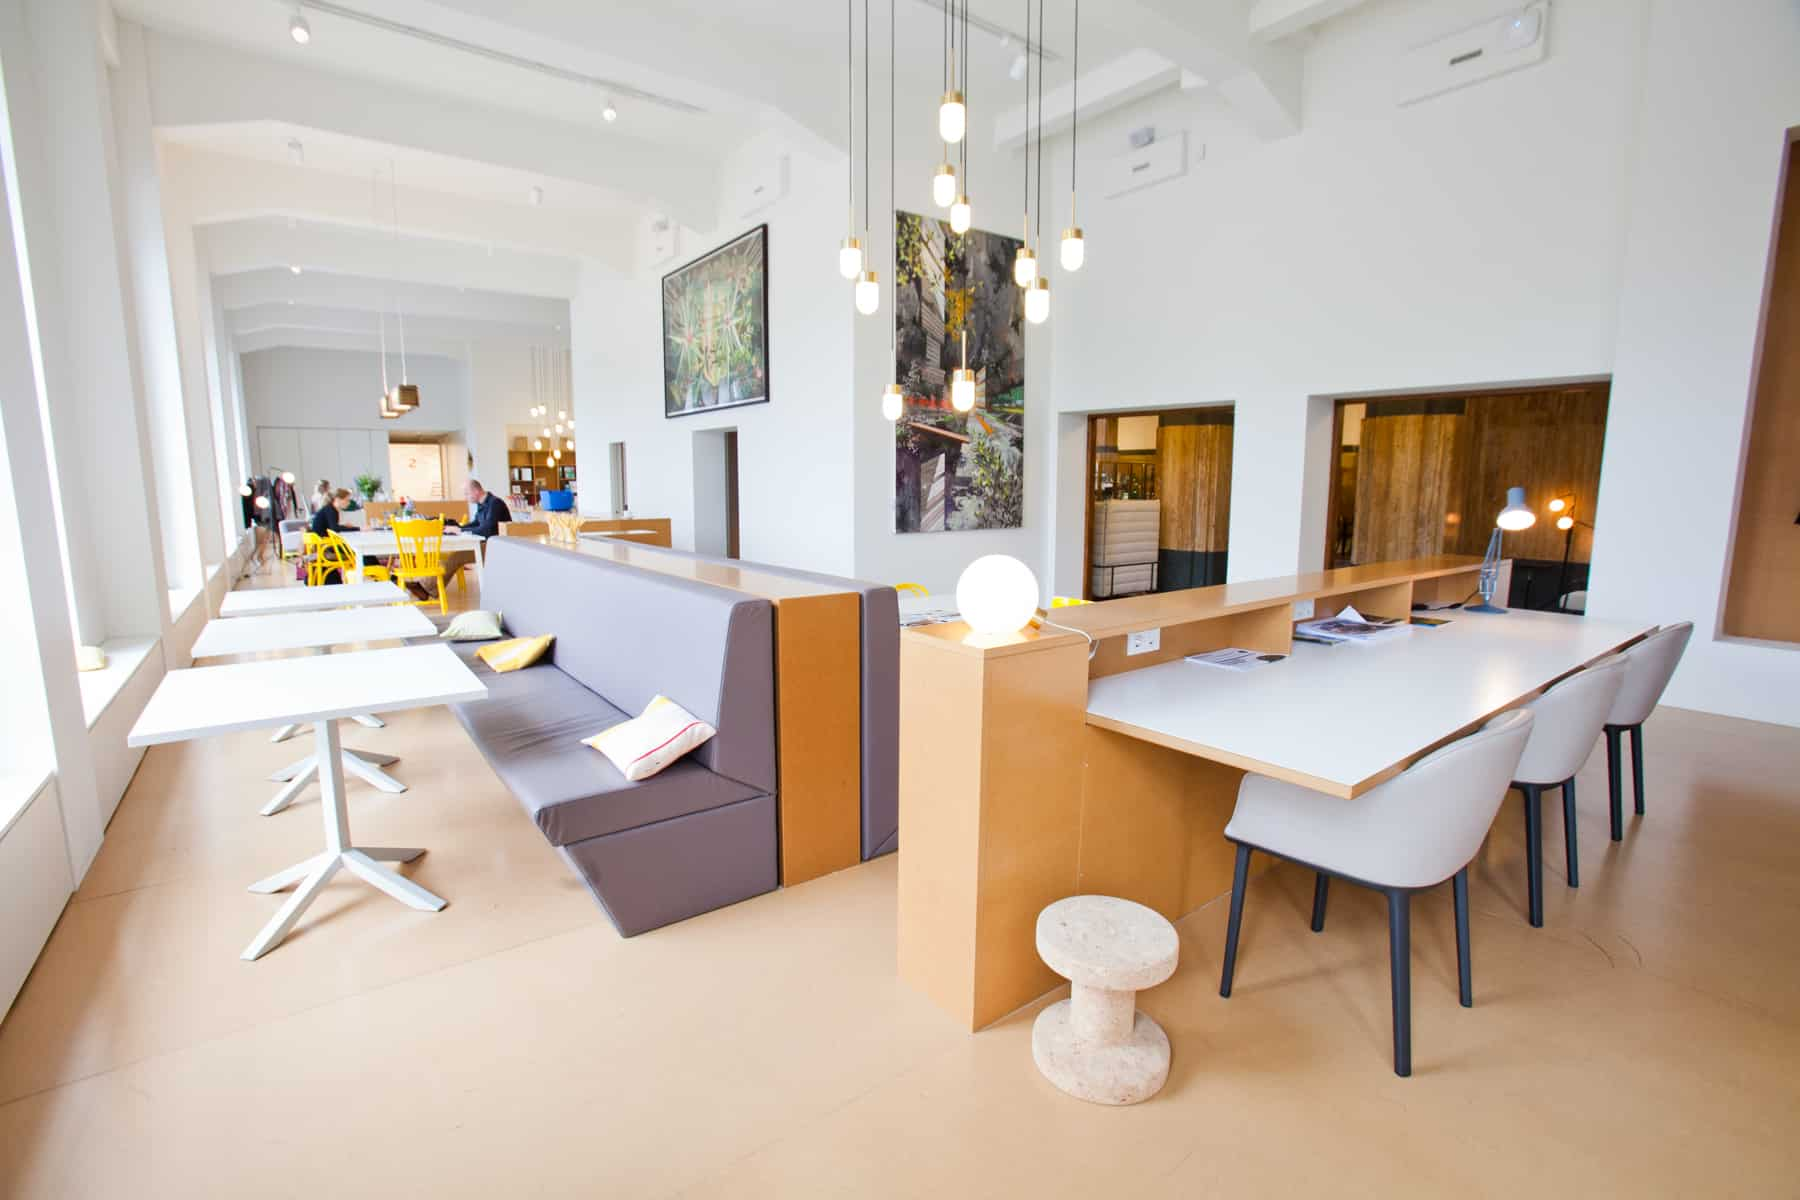 Chairs and tables room Spaces Rode Olifant Den Haag